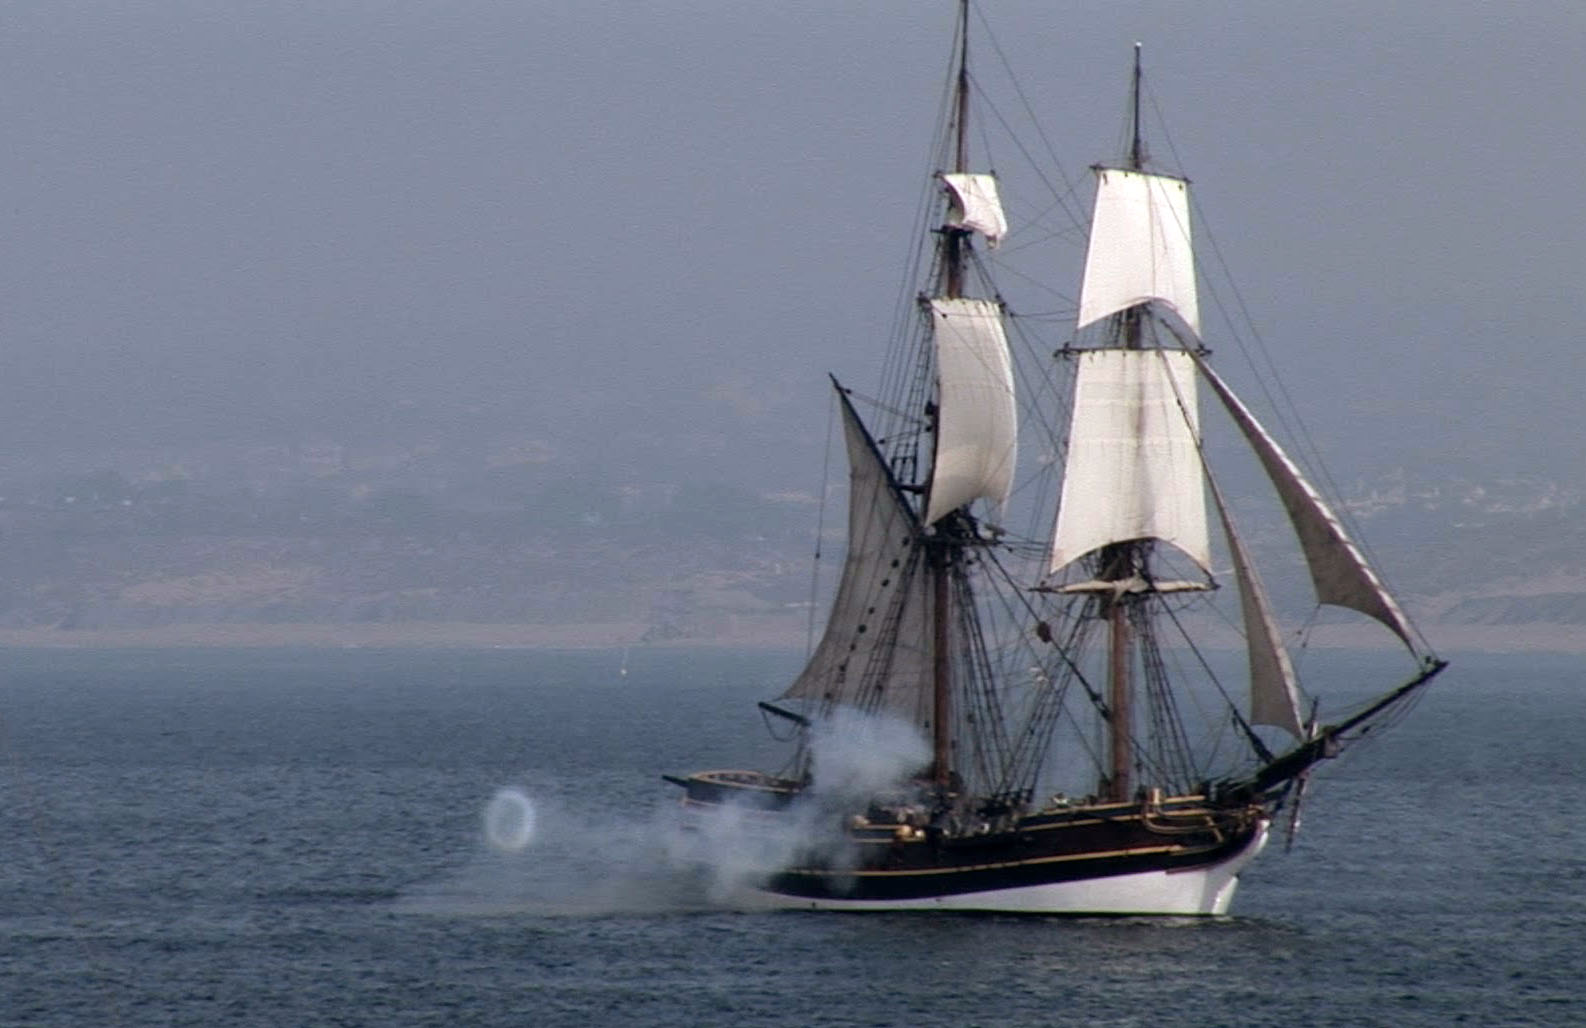 The tall ship  Lady Washington  played the role of the historic ship  Santa Rosa  (Photo courtesy of Edward Pío Videography).